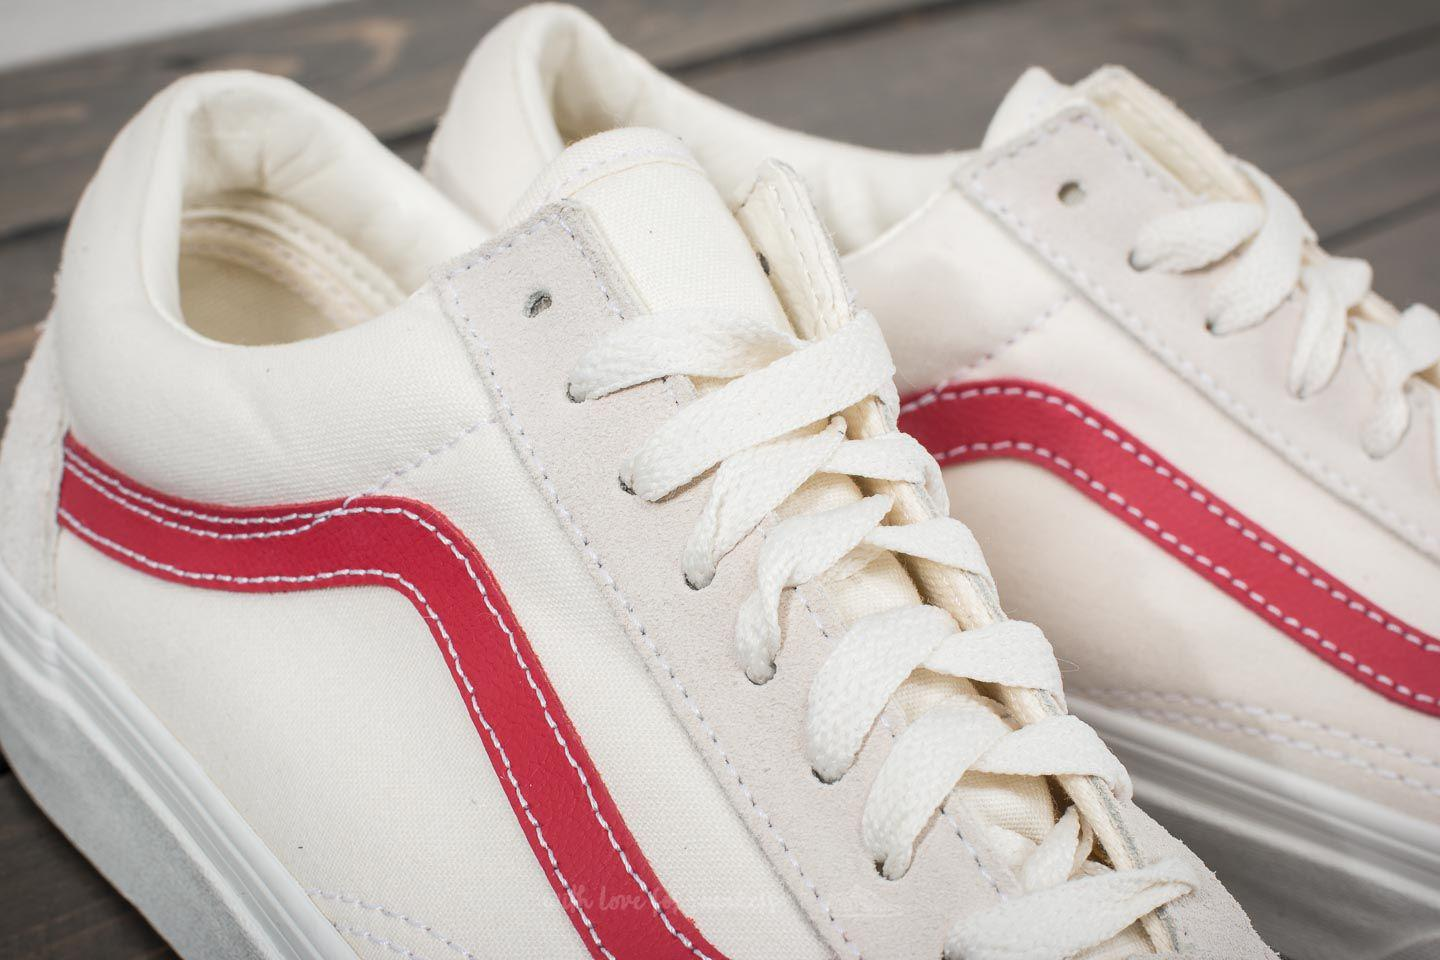 Lyst - Vans Old Skool Vintage White  Rococco Red in White for Men 7c5a5acf21